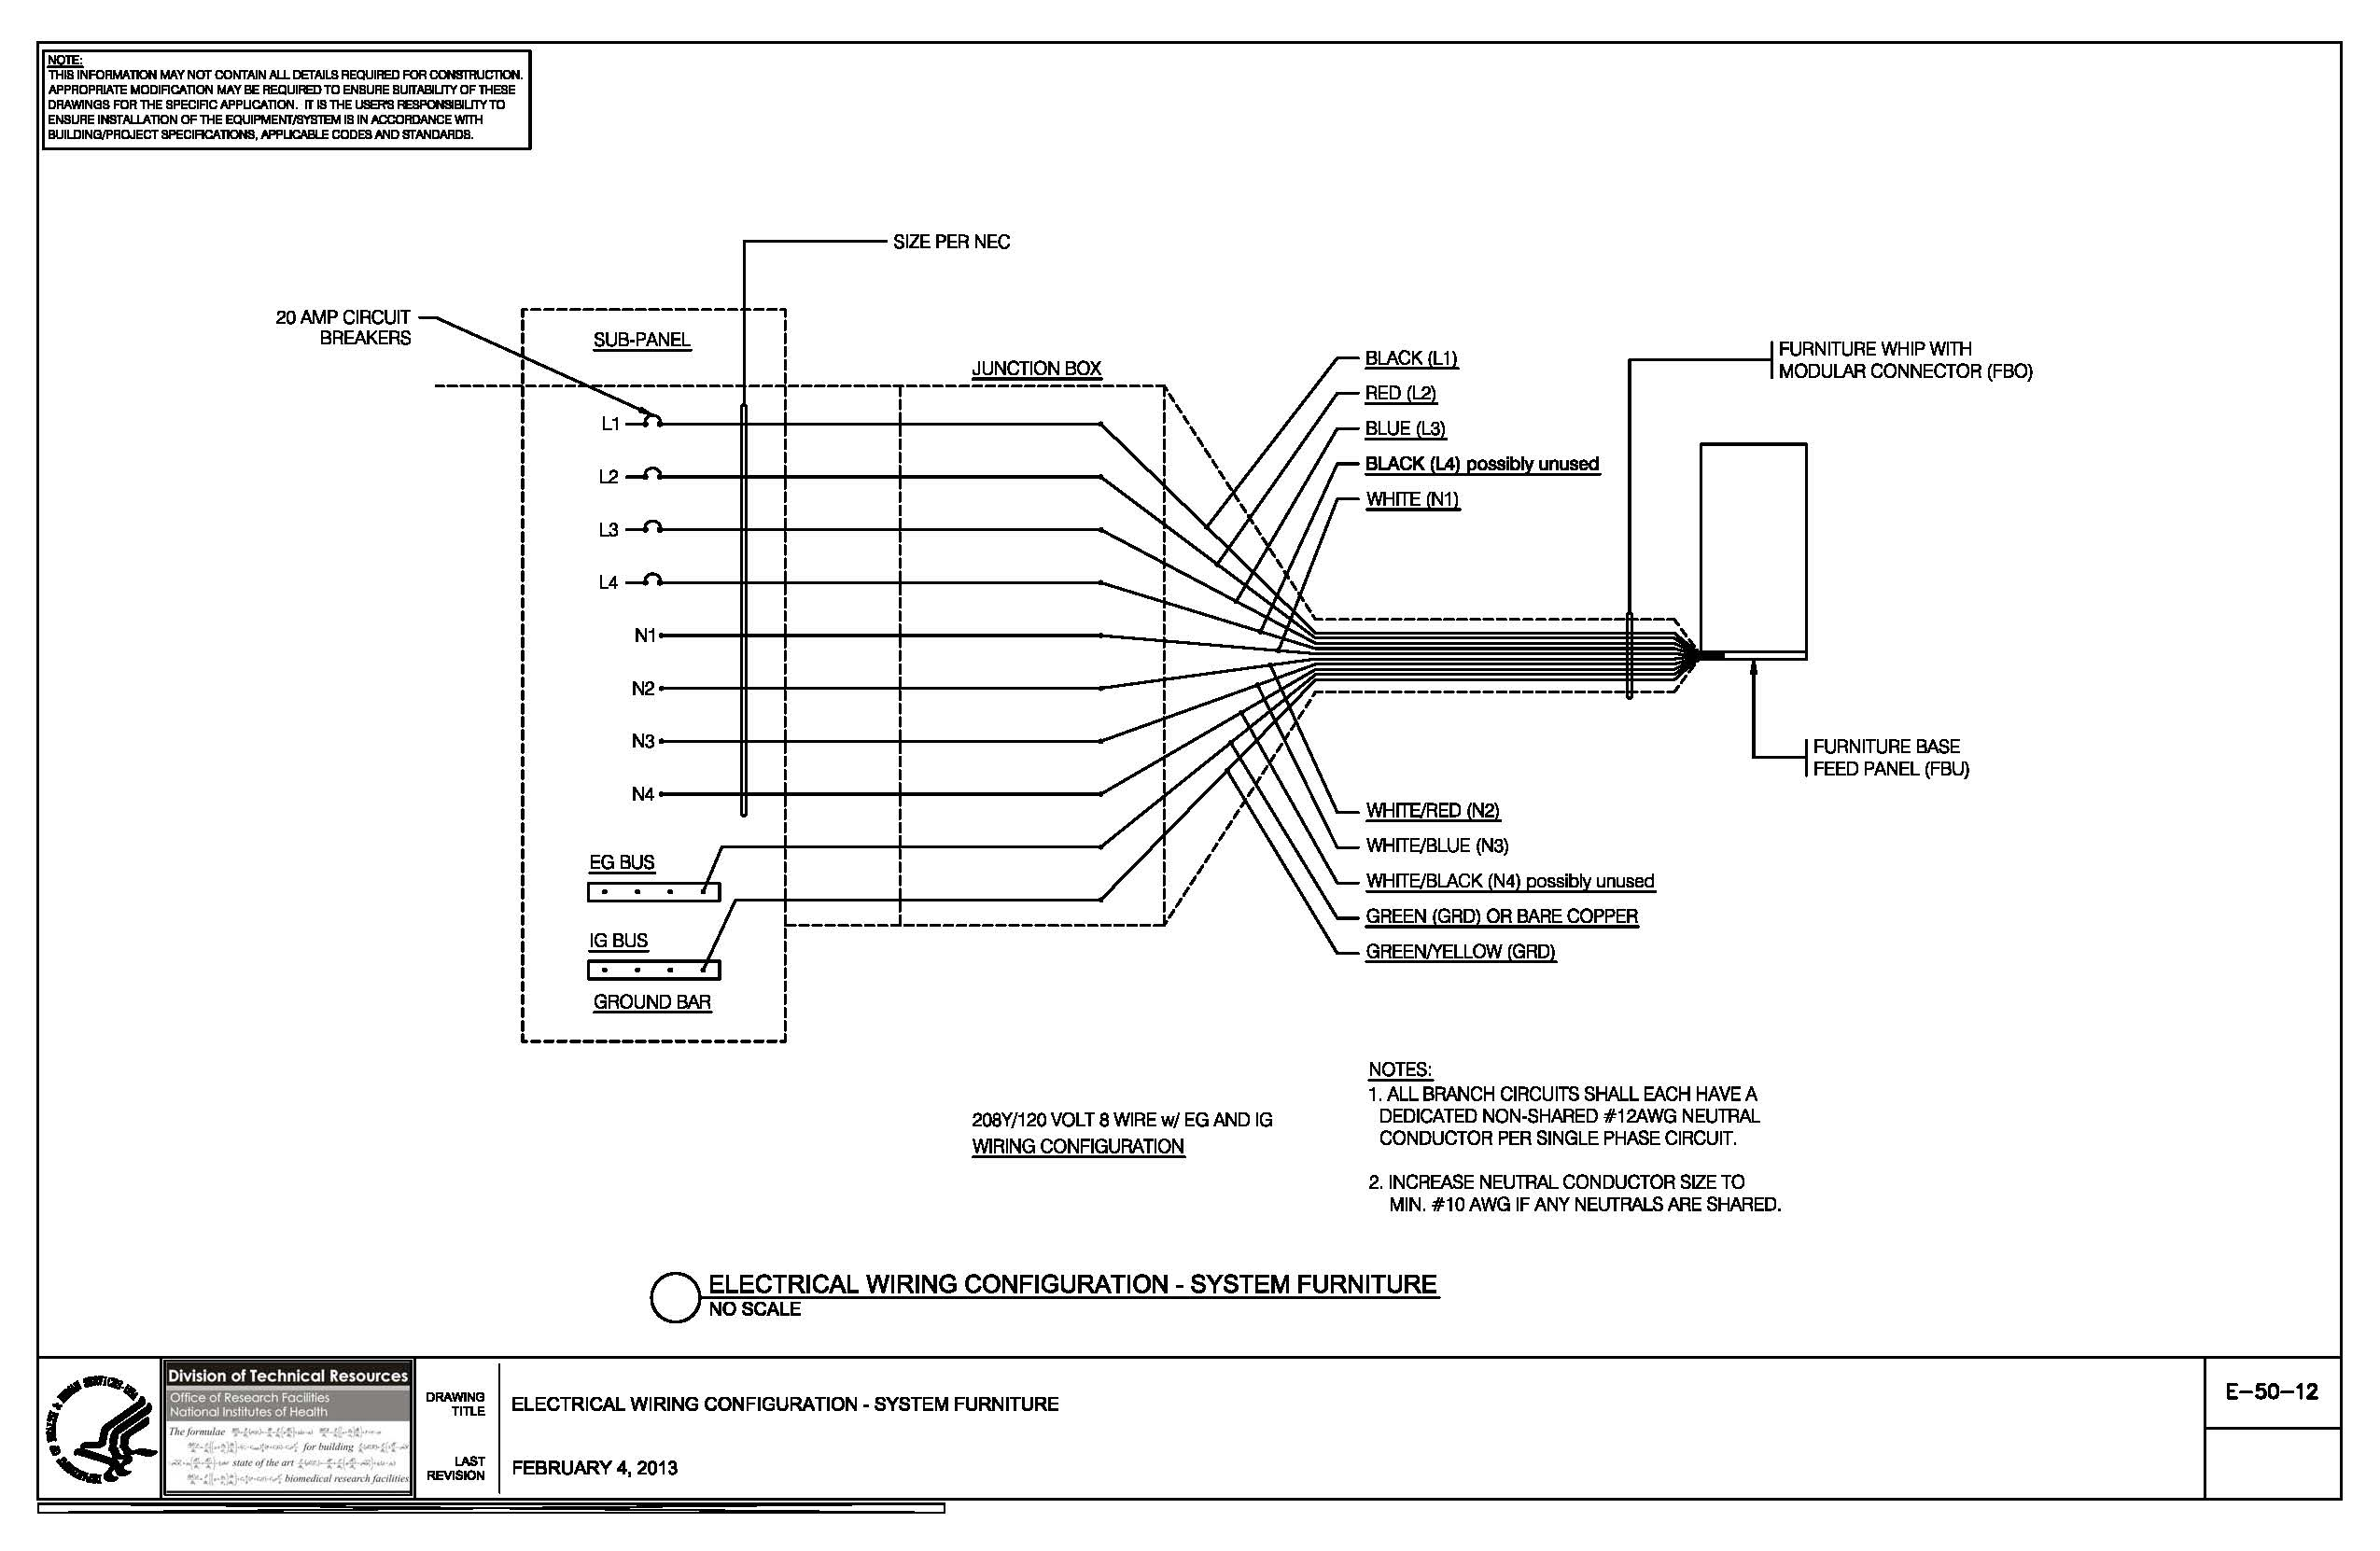 DIAGRAM] 4 Pole Receptacle Wiring Diagram FULL Version HD Quality Wiring  Diagram - FACEBOOKWERBUNG.PFTC.FRpftc